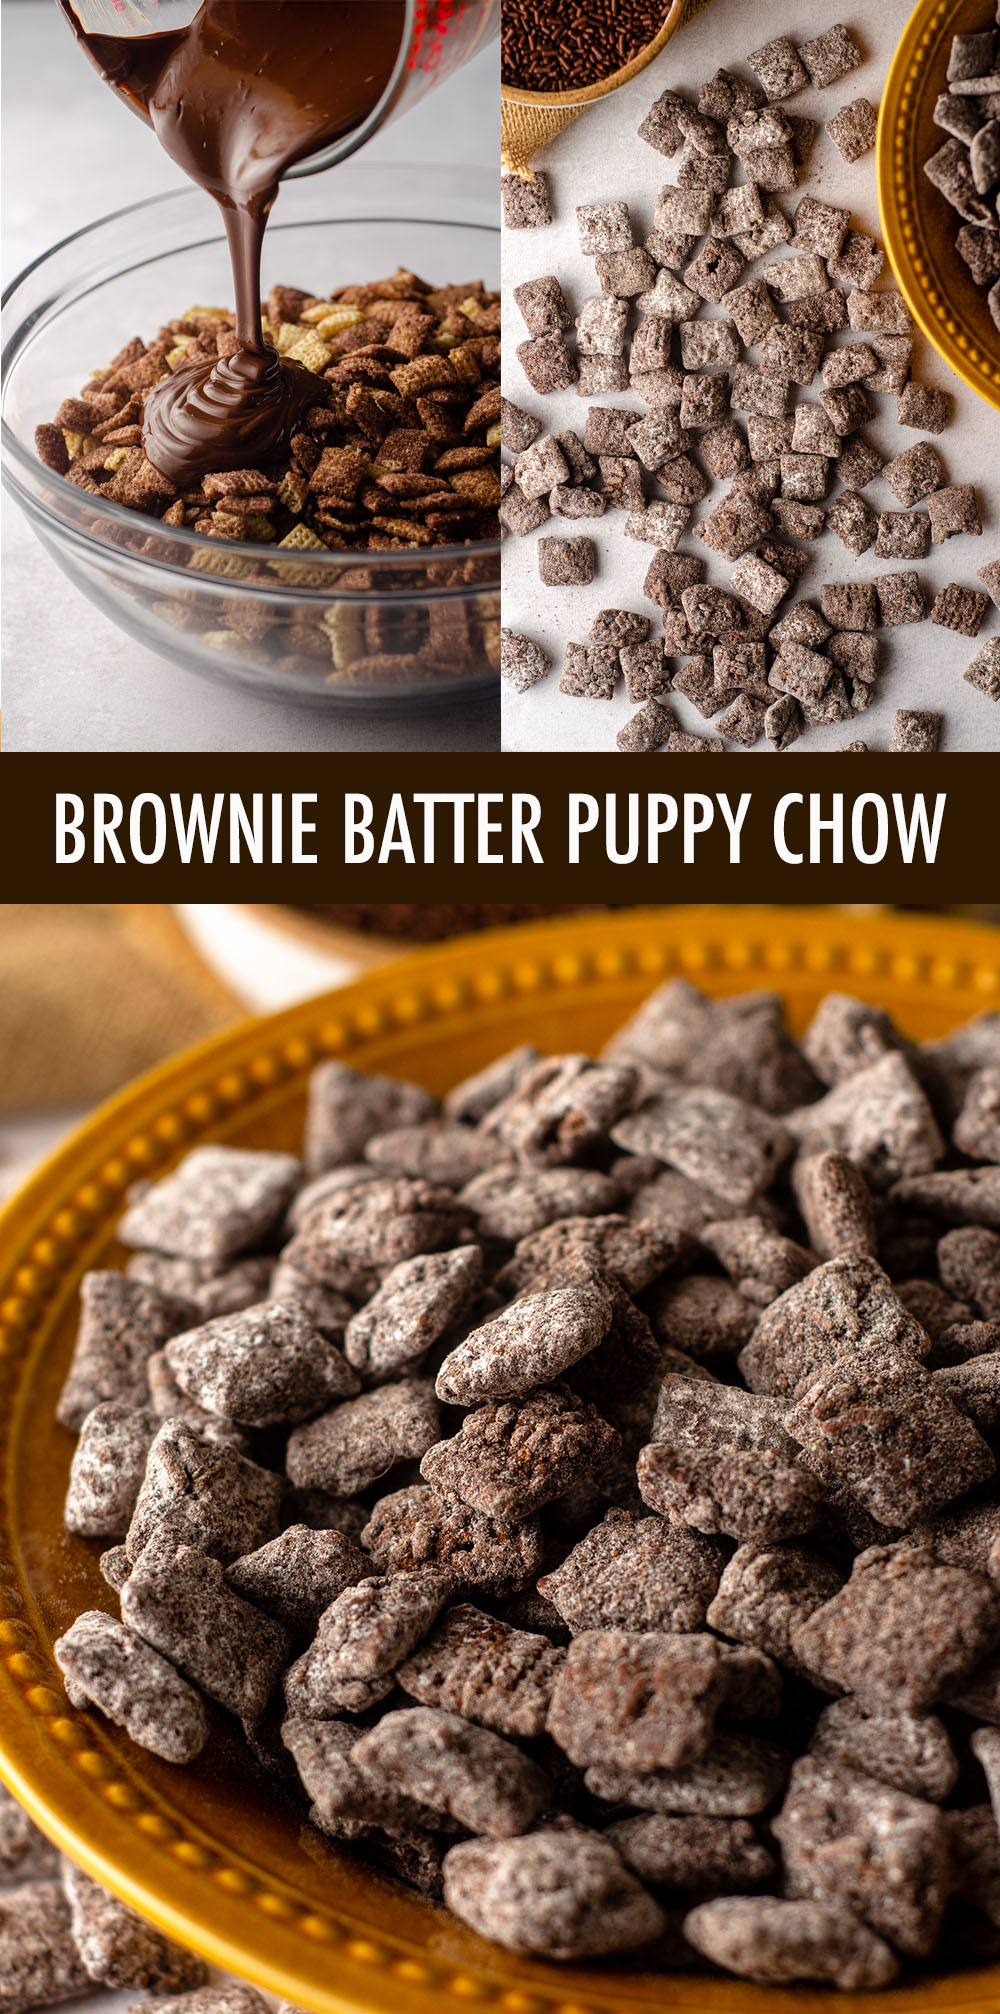 A rich chocolate take on classic puppy chow made to taste just like brownie batter.